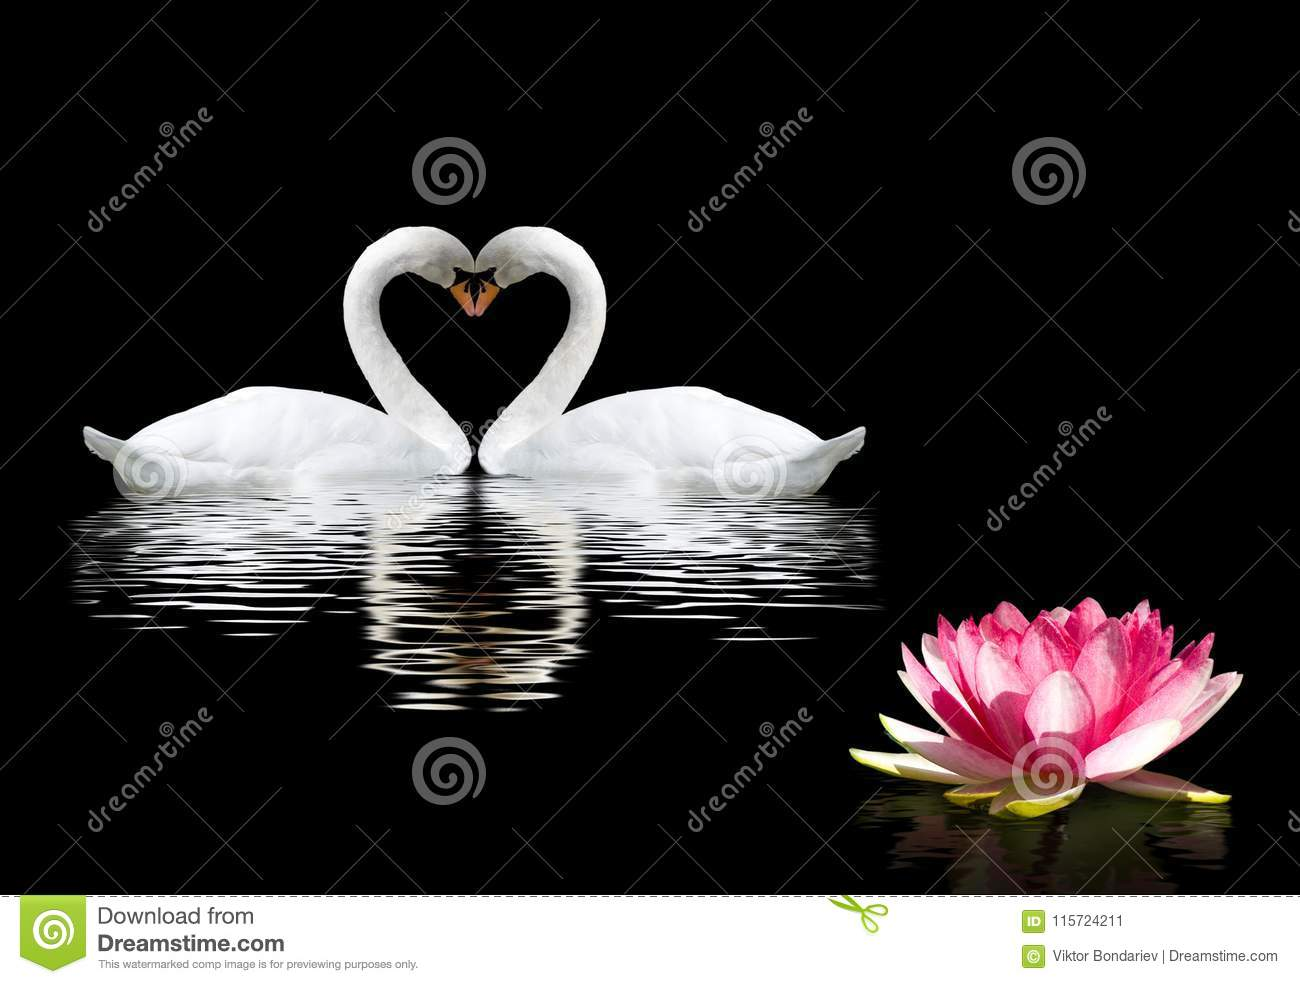 Two Swans And A Lotus Flower On The Water Stock Image Image Of